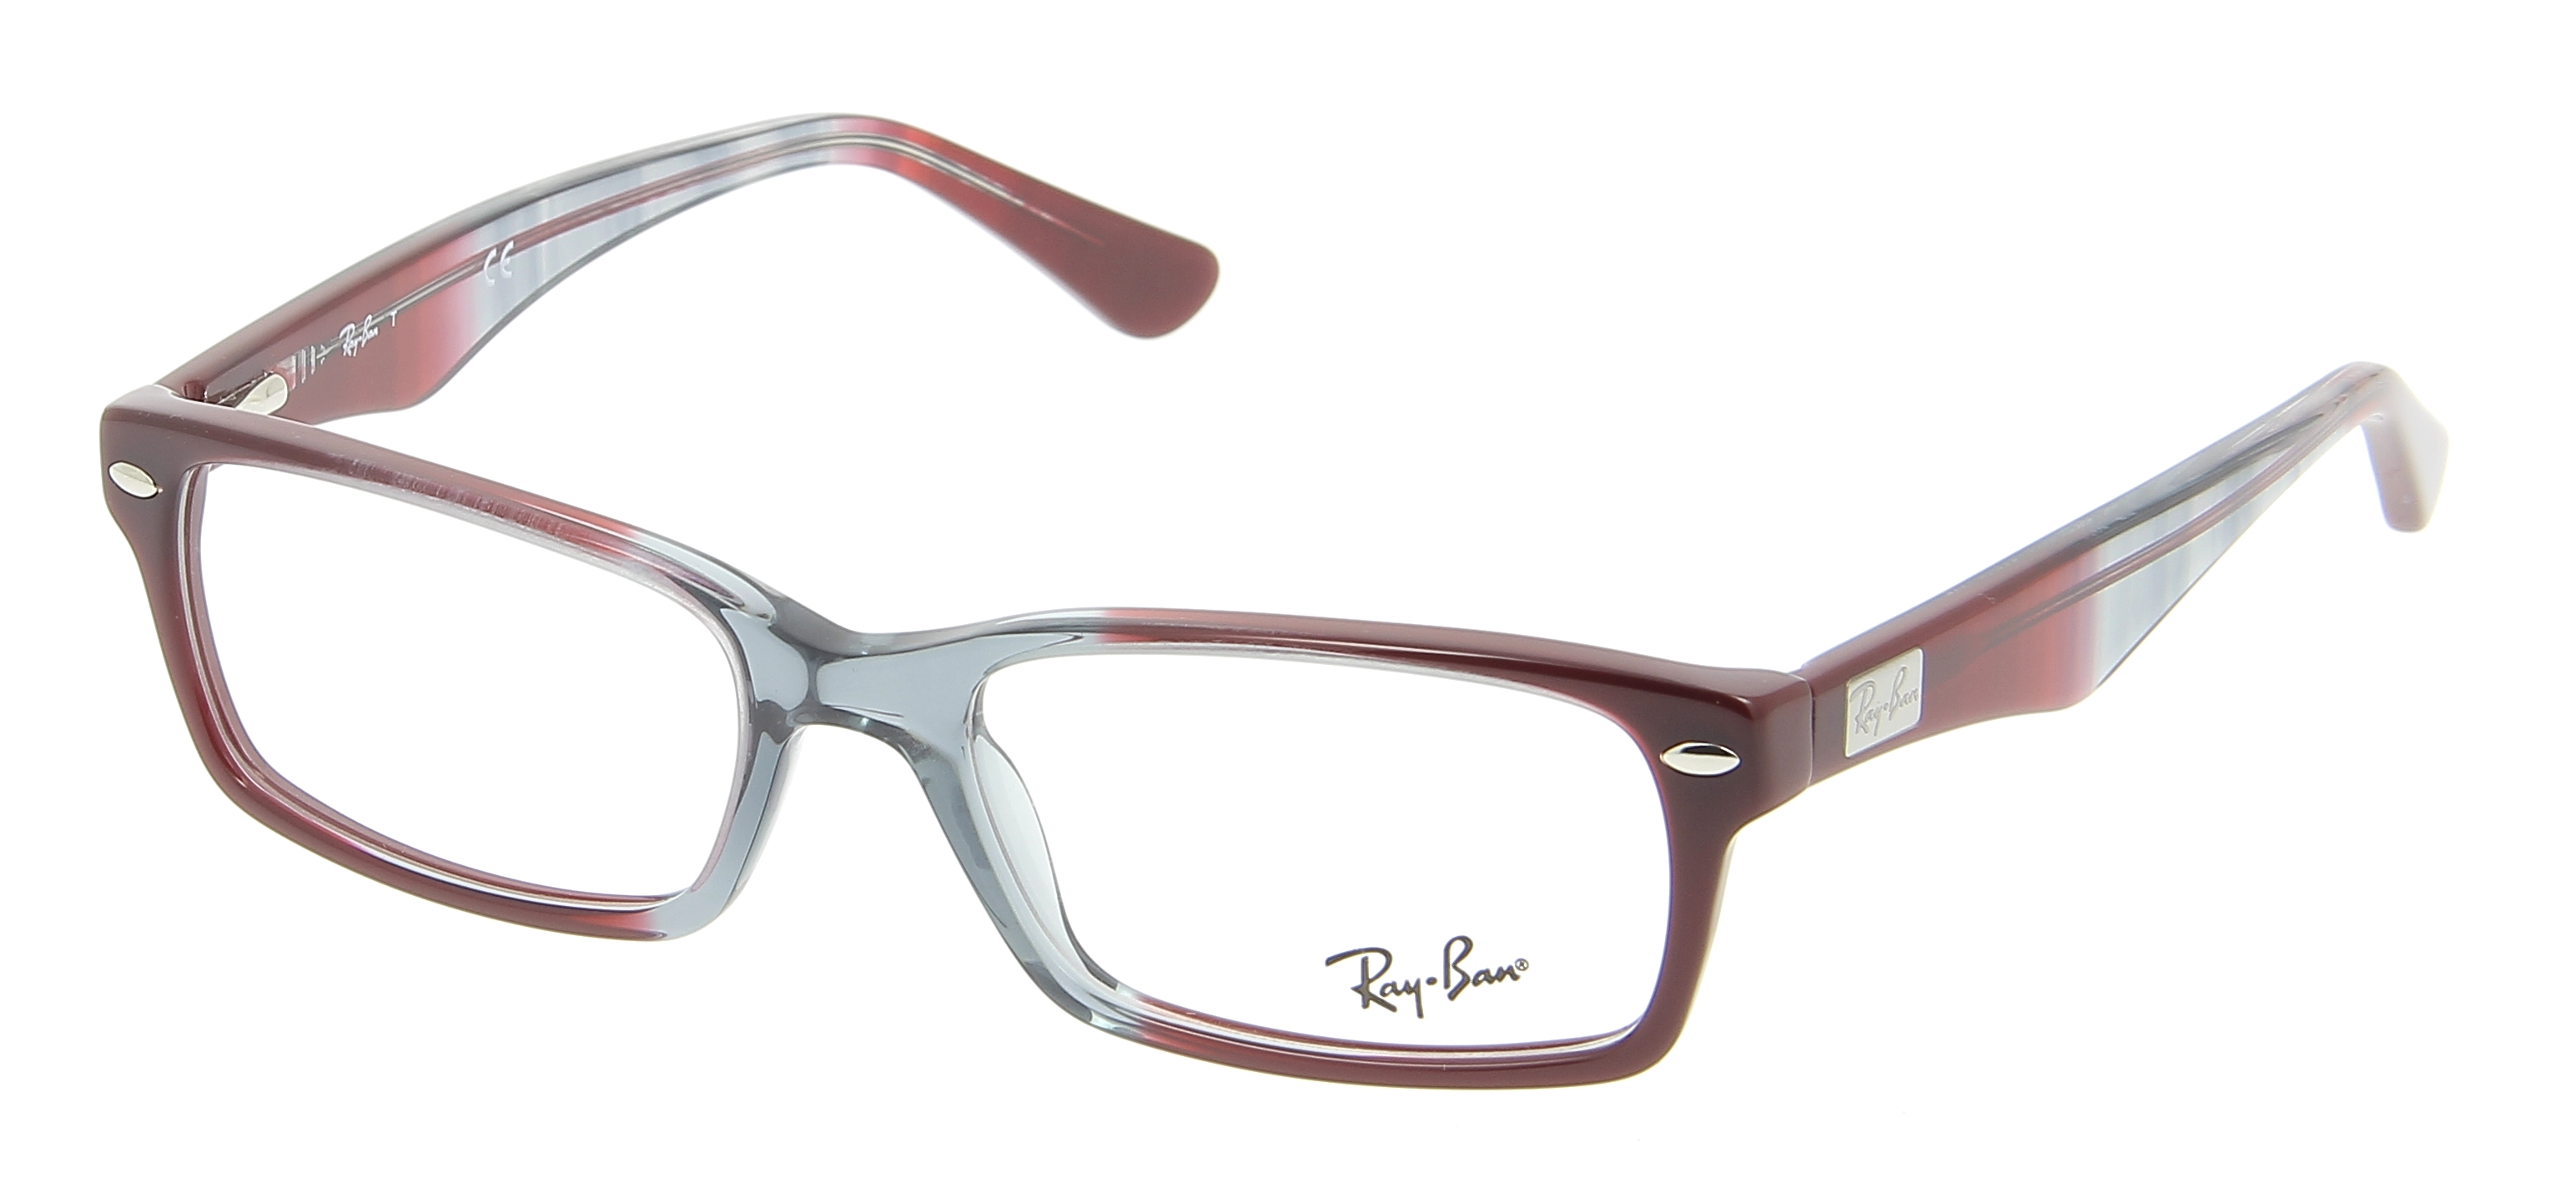 29d6779877 Ray Ban Glasses Prices Rx 5206